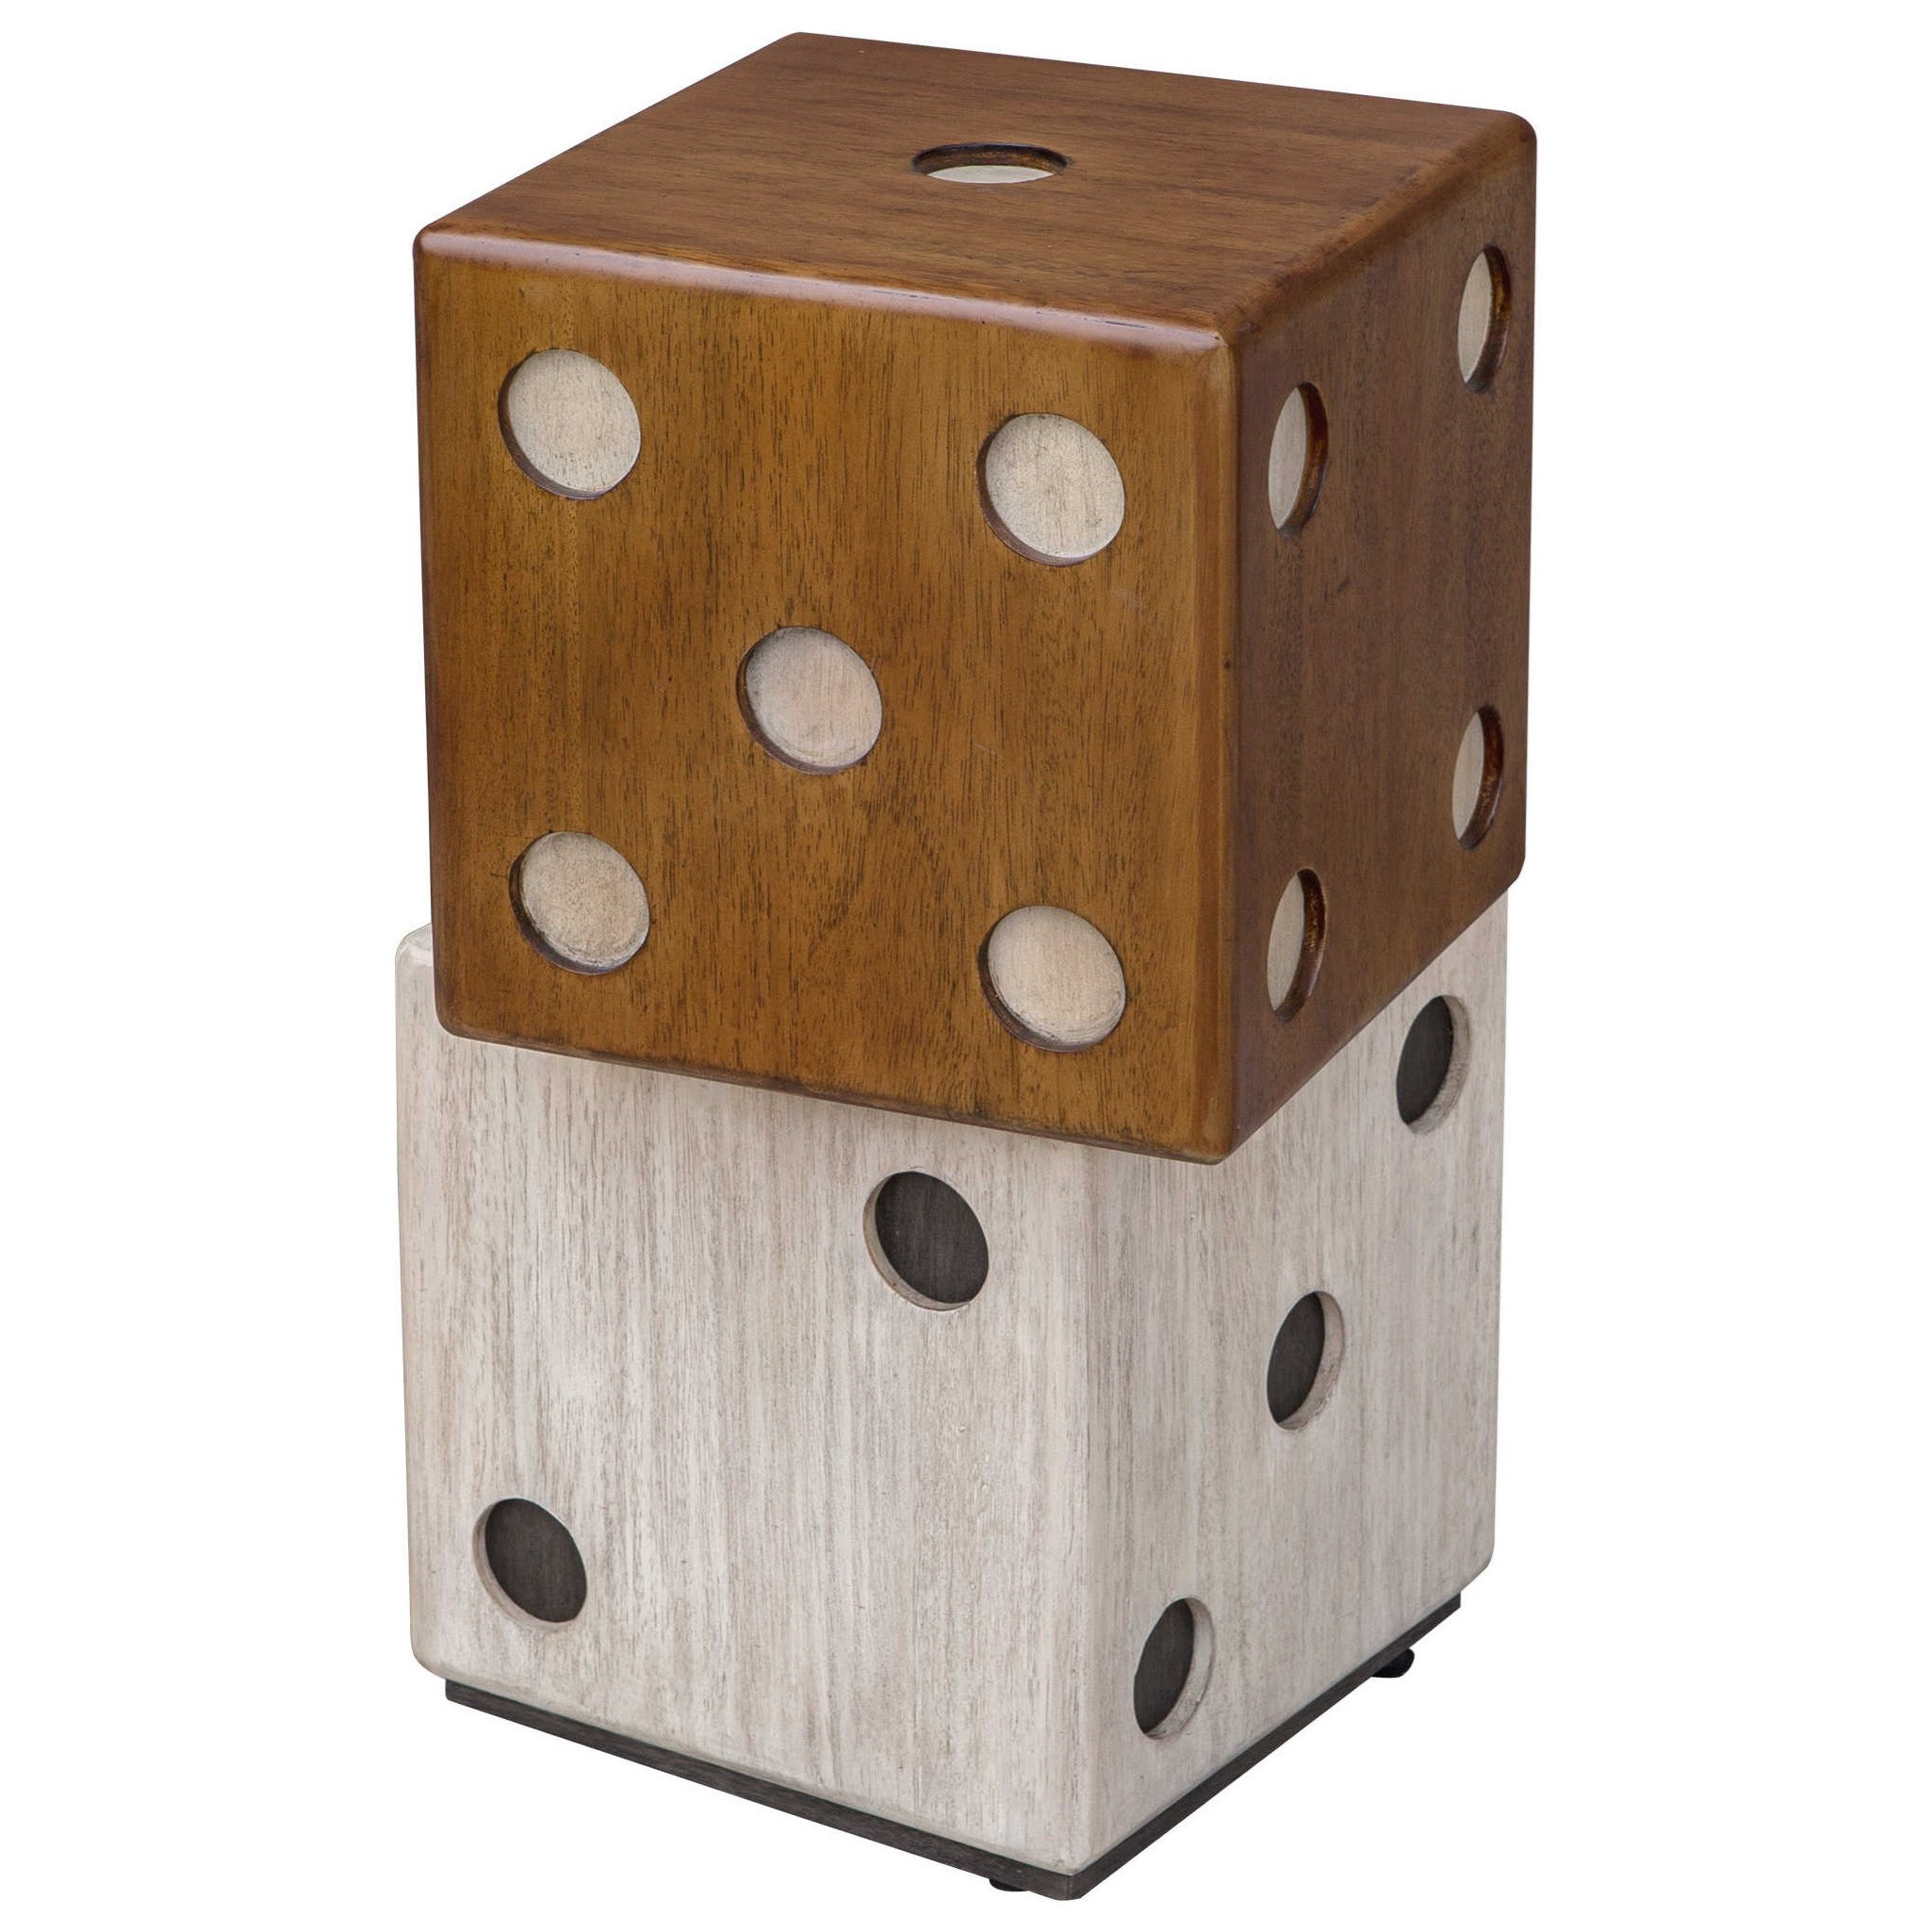 Accent Furniture - Occasional Tables Roll The Dice Accent Table by Uttermost at Goffena Furniture & Mattress Center